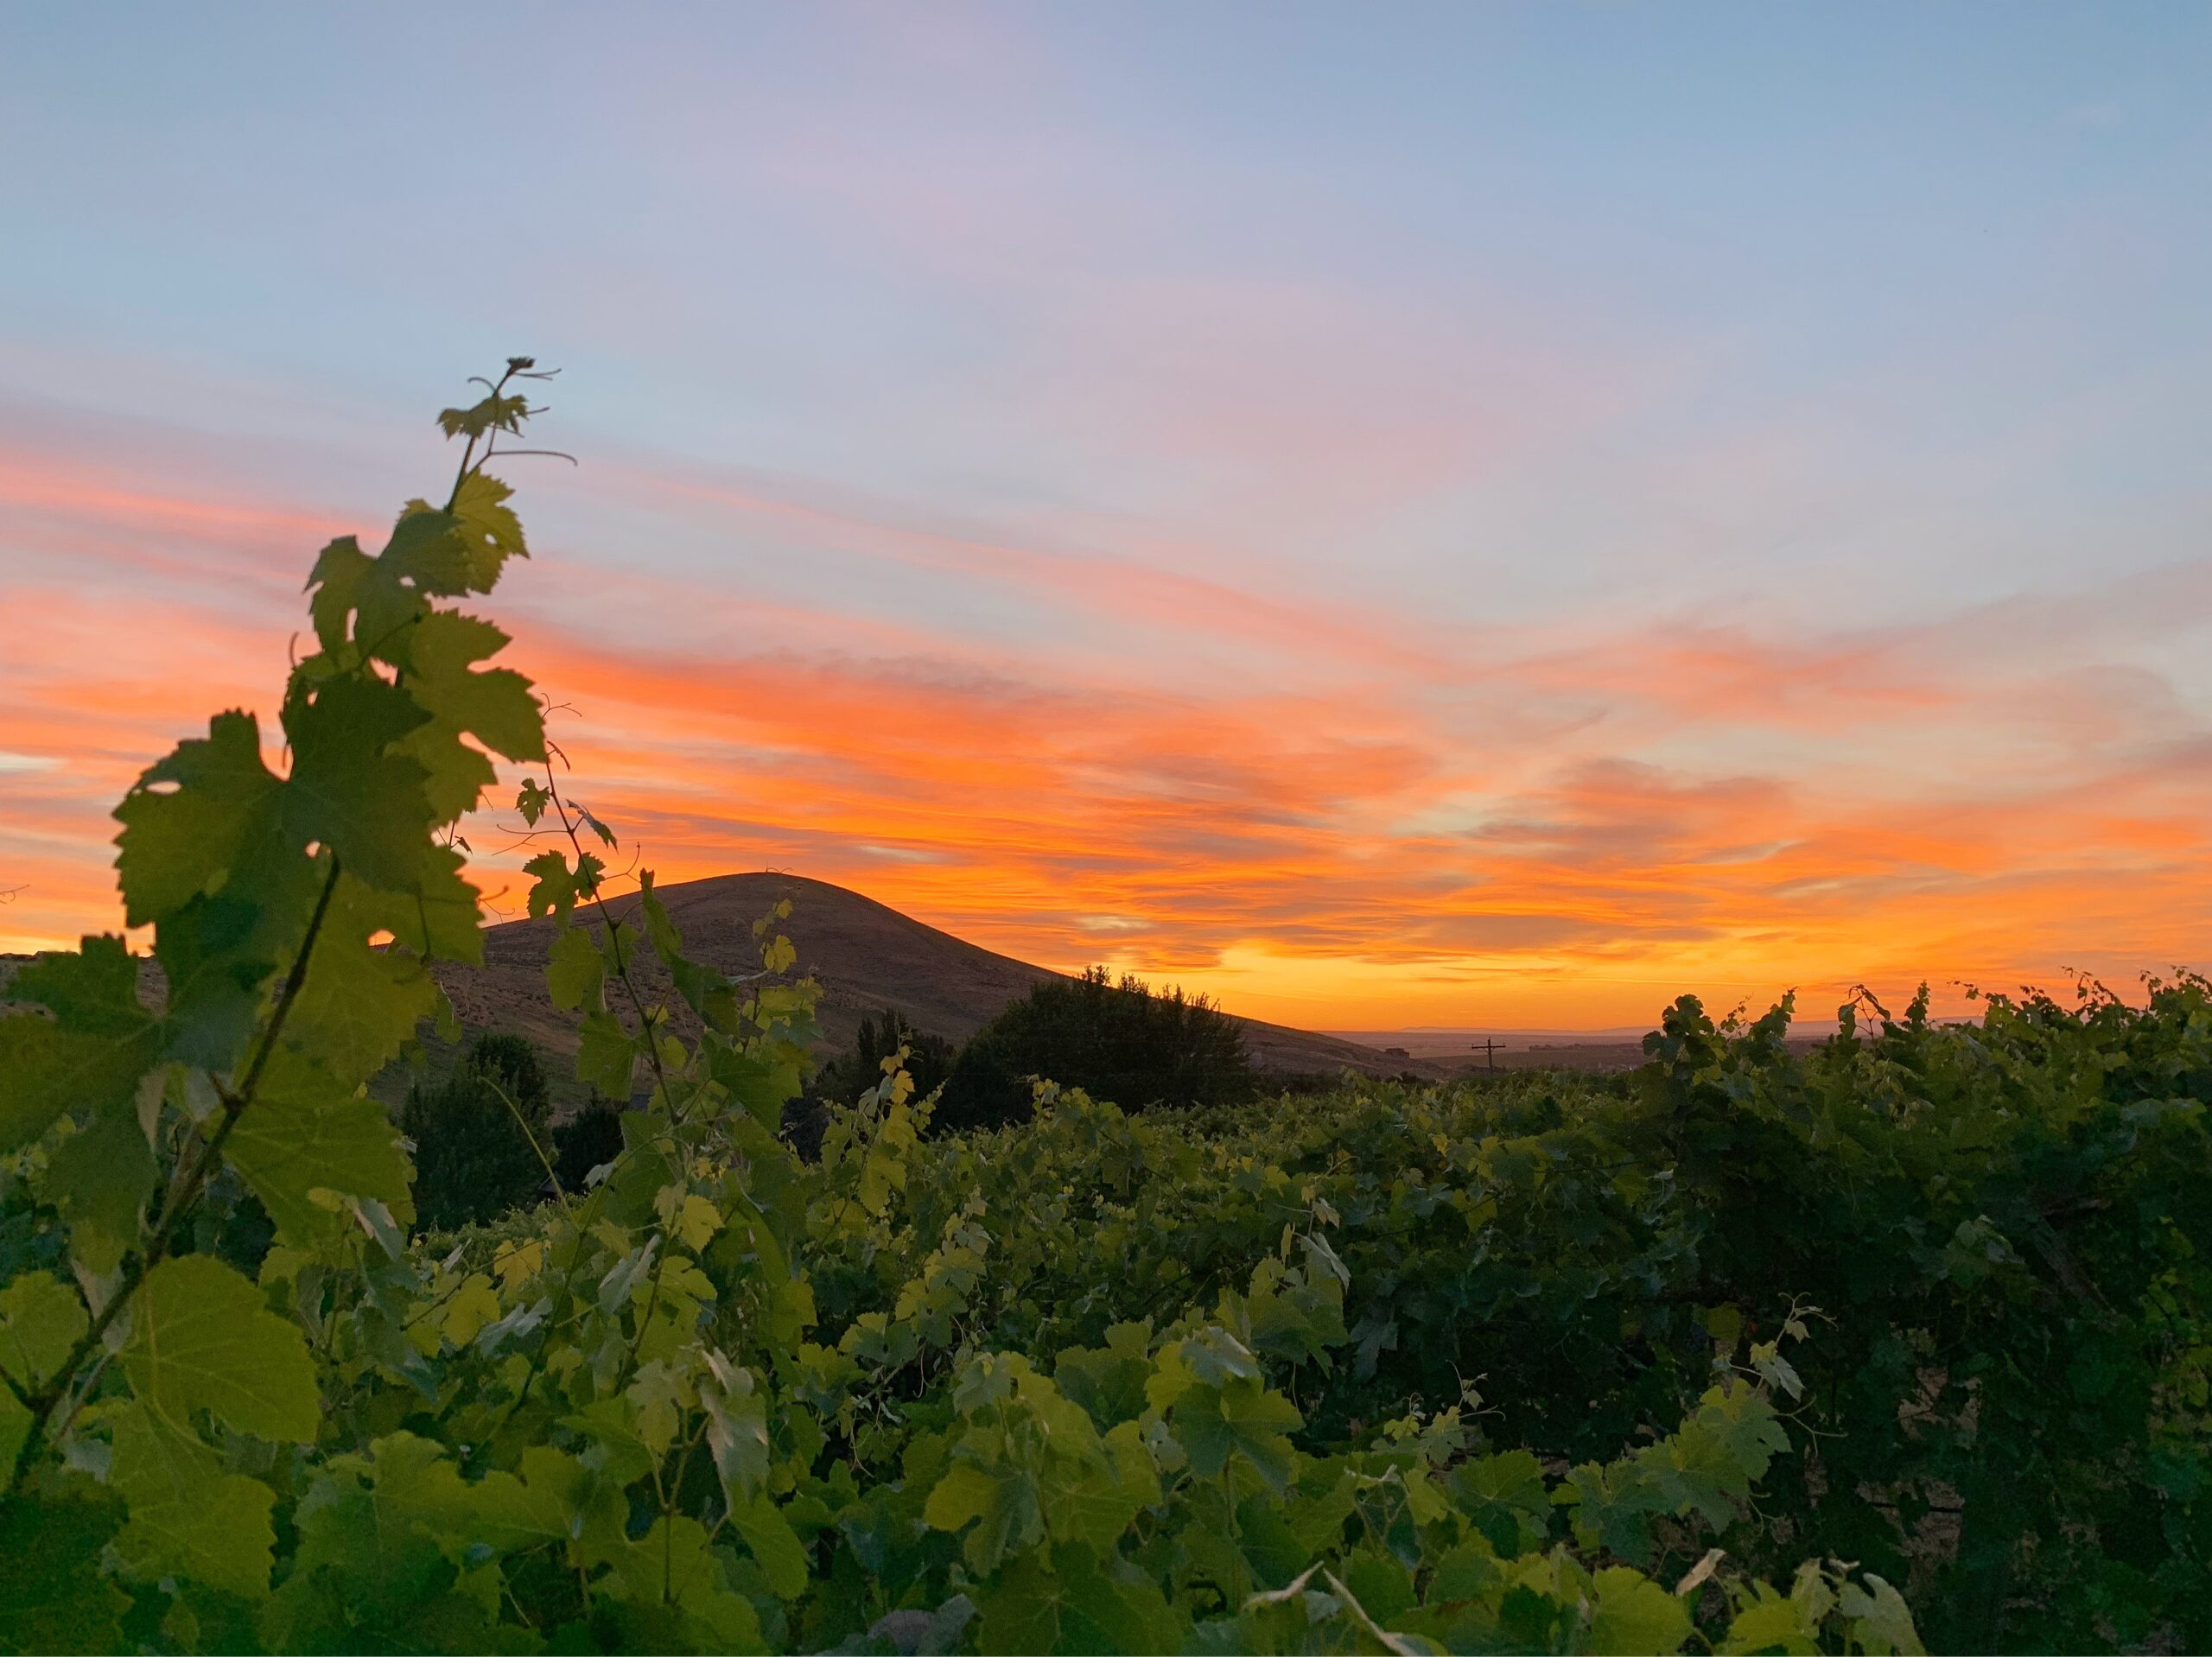 Sunset in orange and gold over a rounded tall hill, with green grape leaves in the foreground.